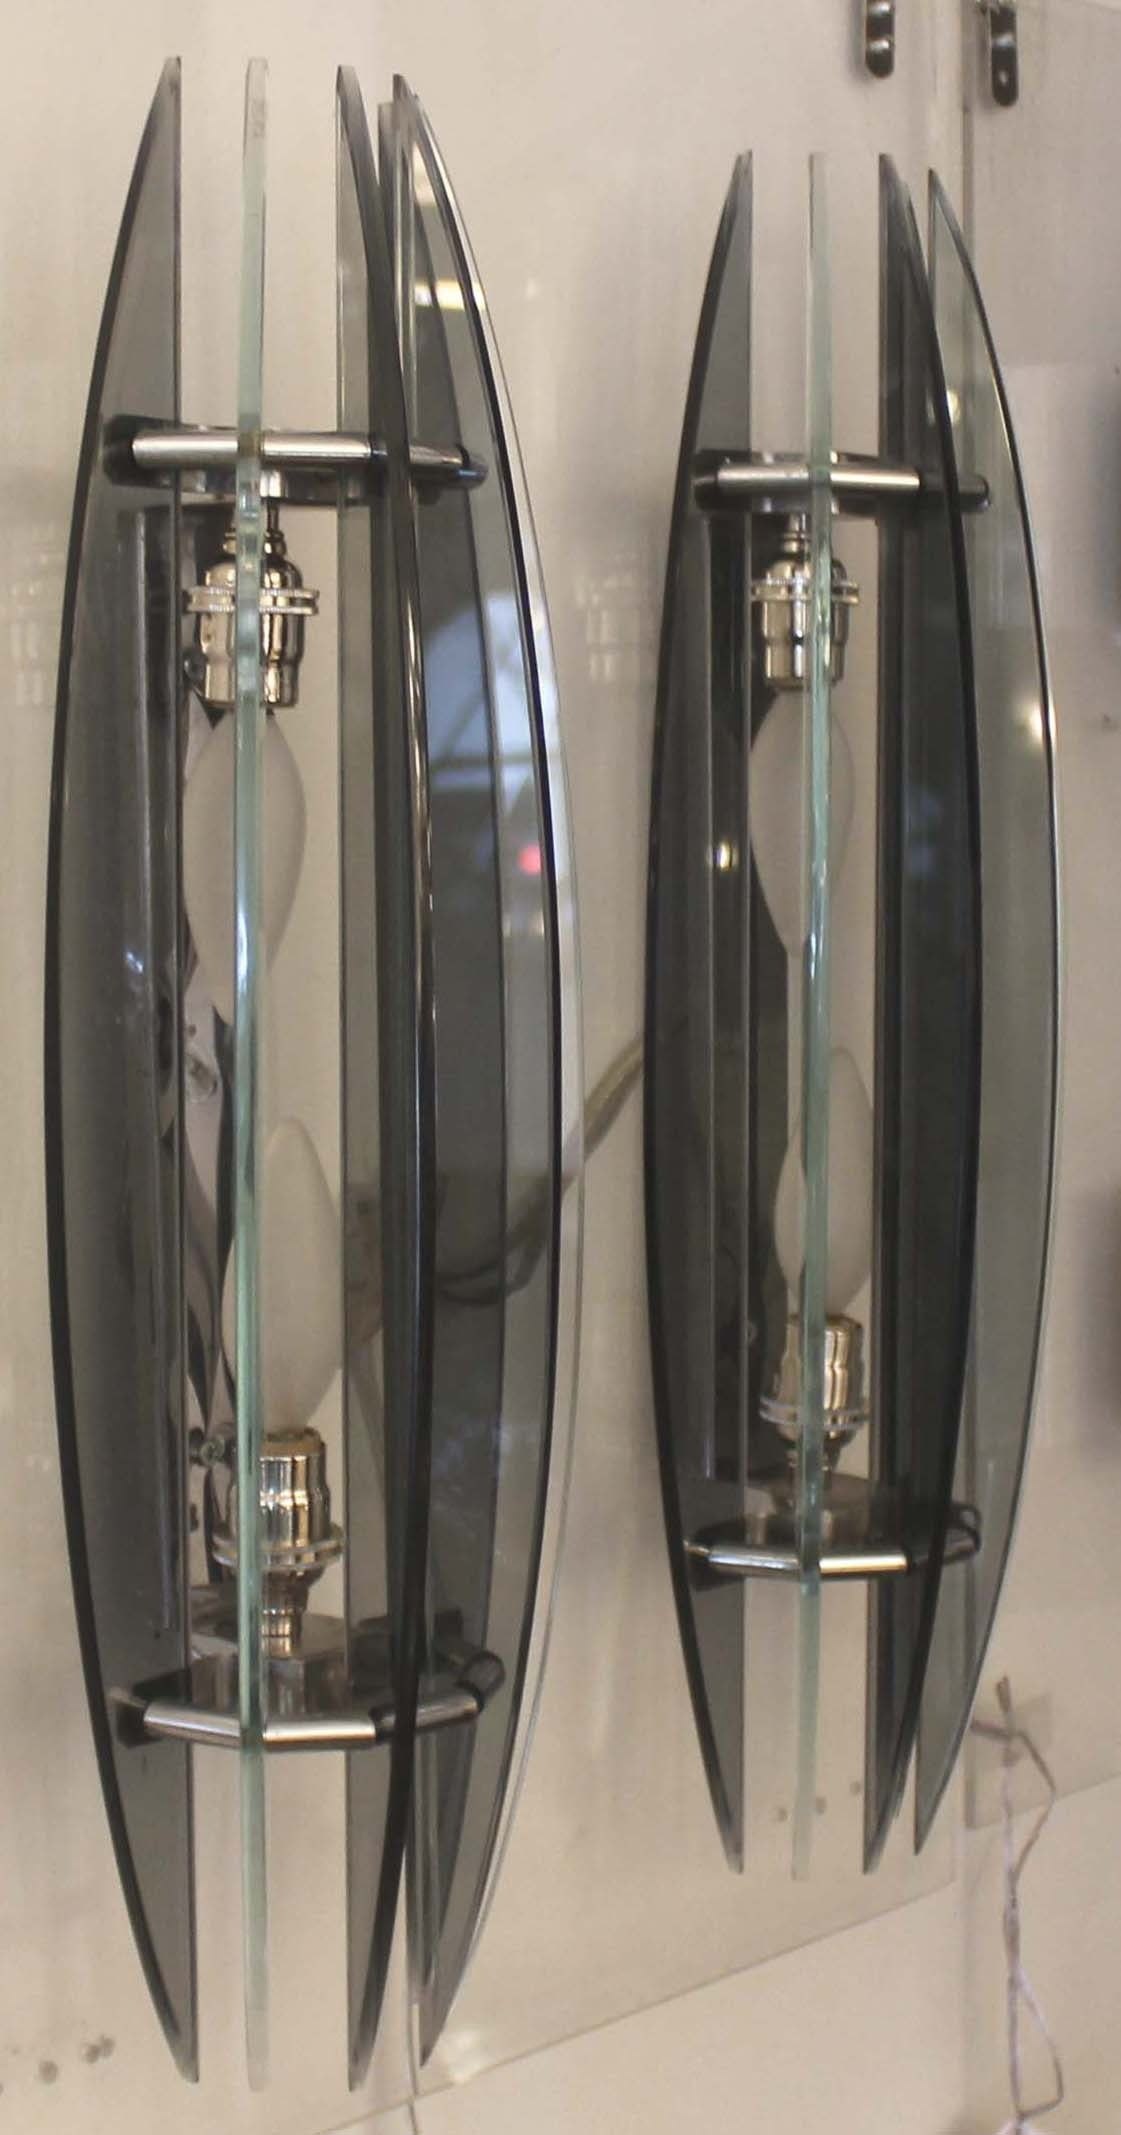 Incorporating six alternating gray and clear glass slabs that are attached to a small chromed metal frame. Each sconce has two candelabra sockets that can go up to 60 watts each. Veca was an Italian company active in the 1960s and 1970s specialized